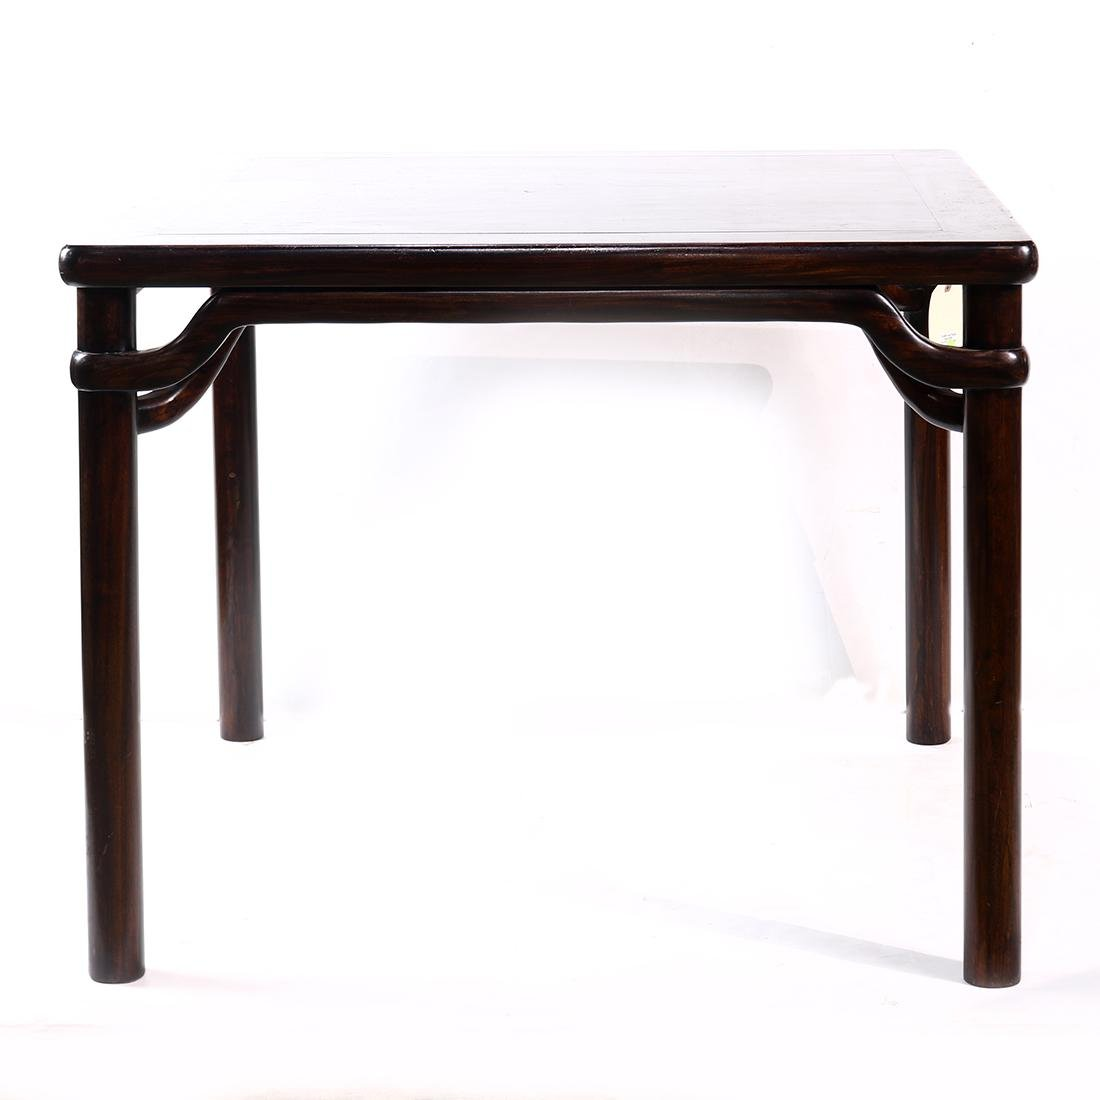 Chinese Wood Square Table - 3